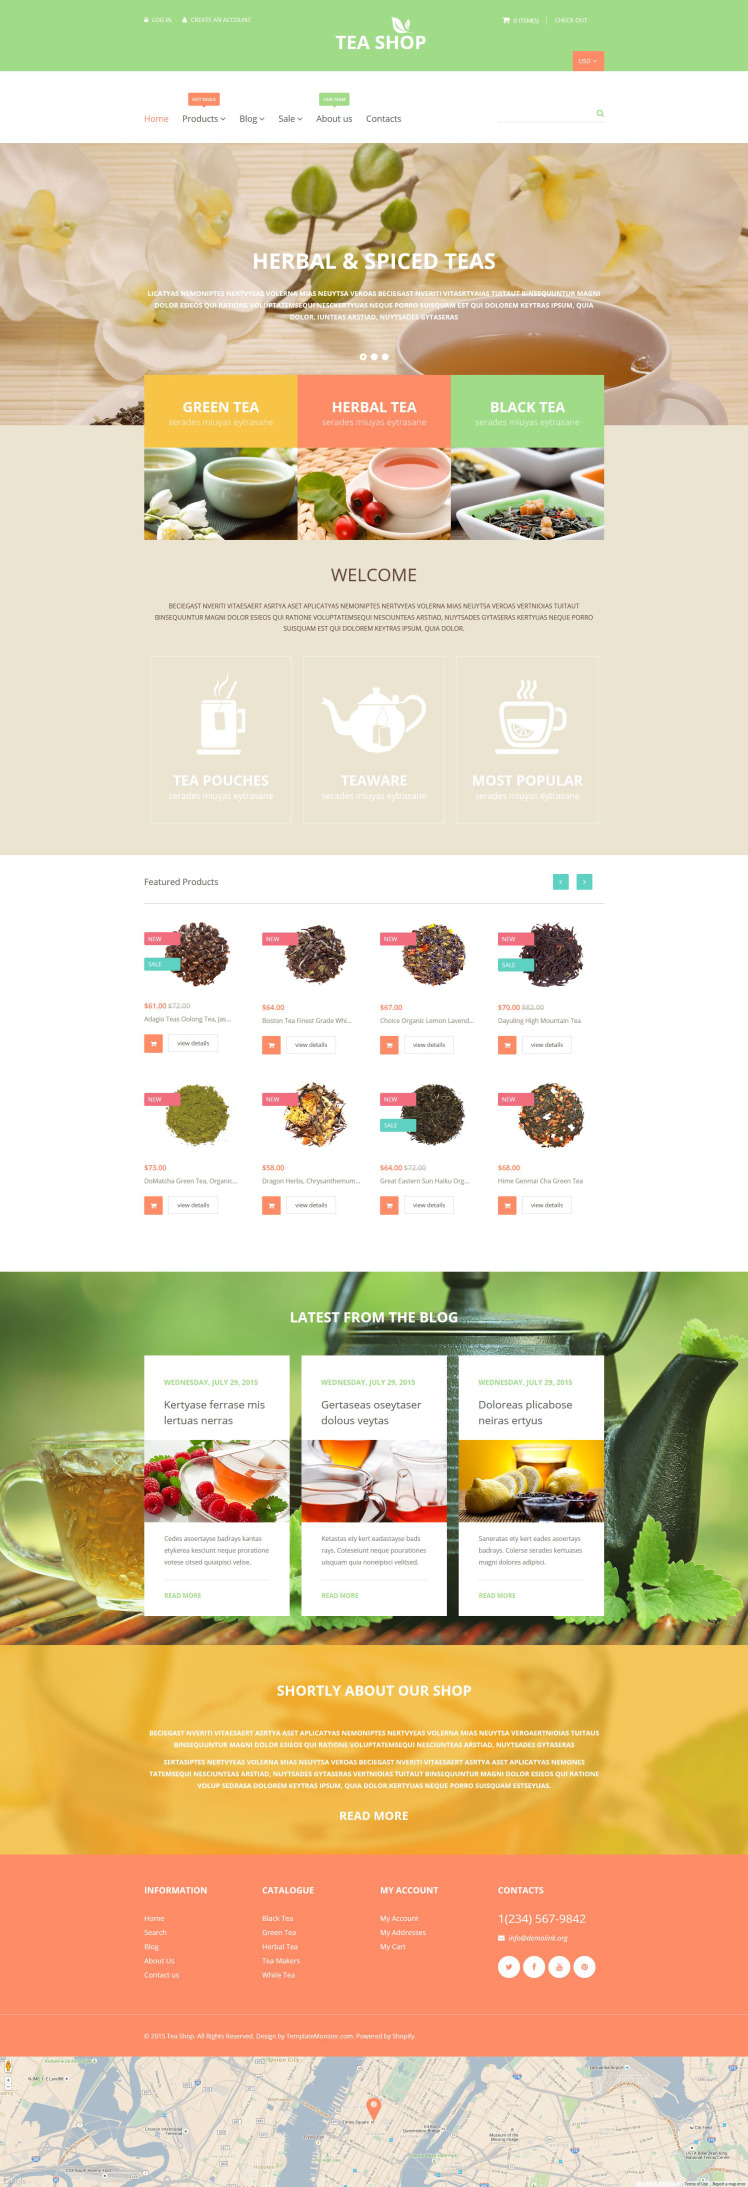 Tea Shop Shopify Themes